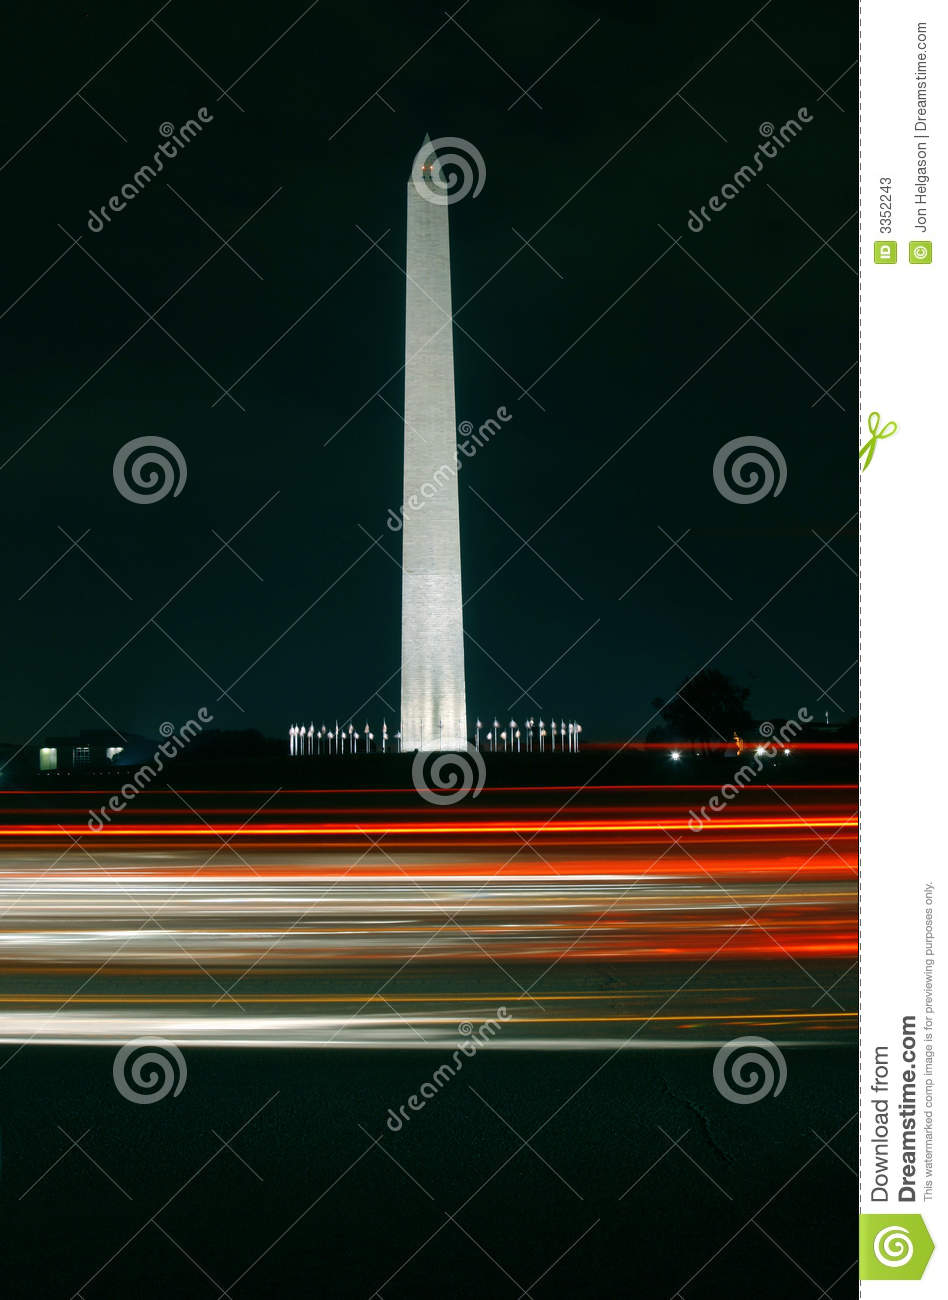 Monumento de Washington